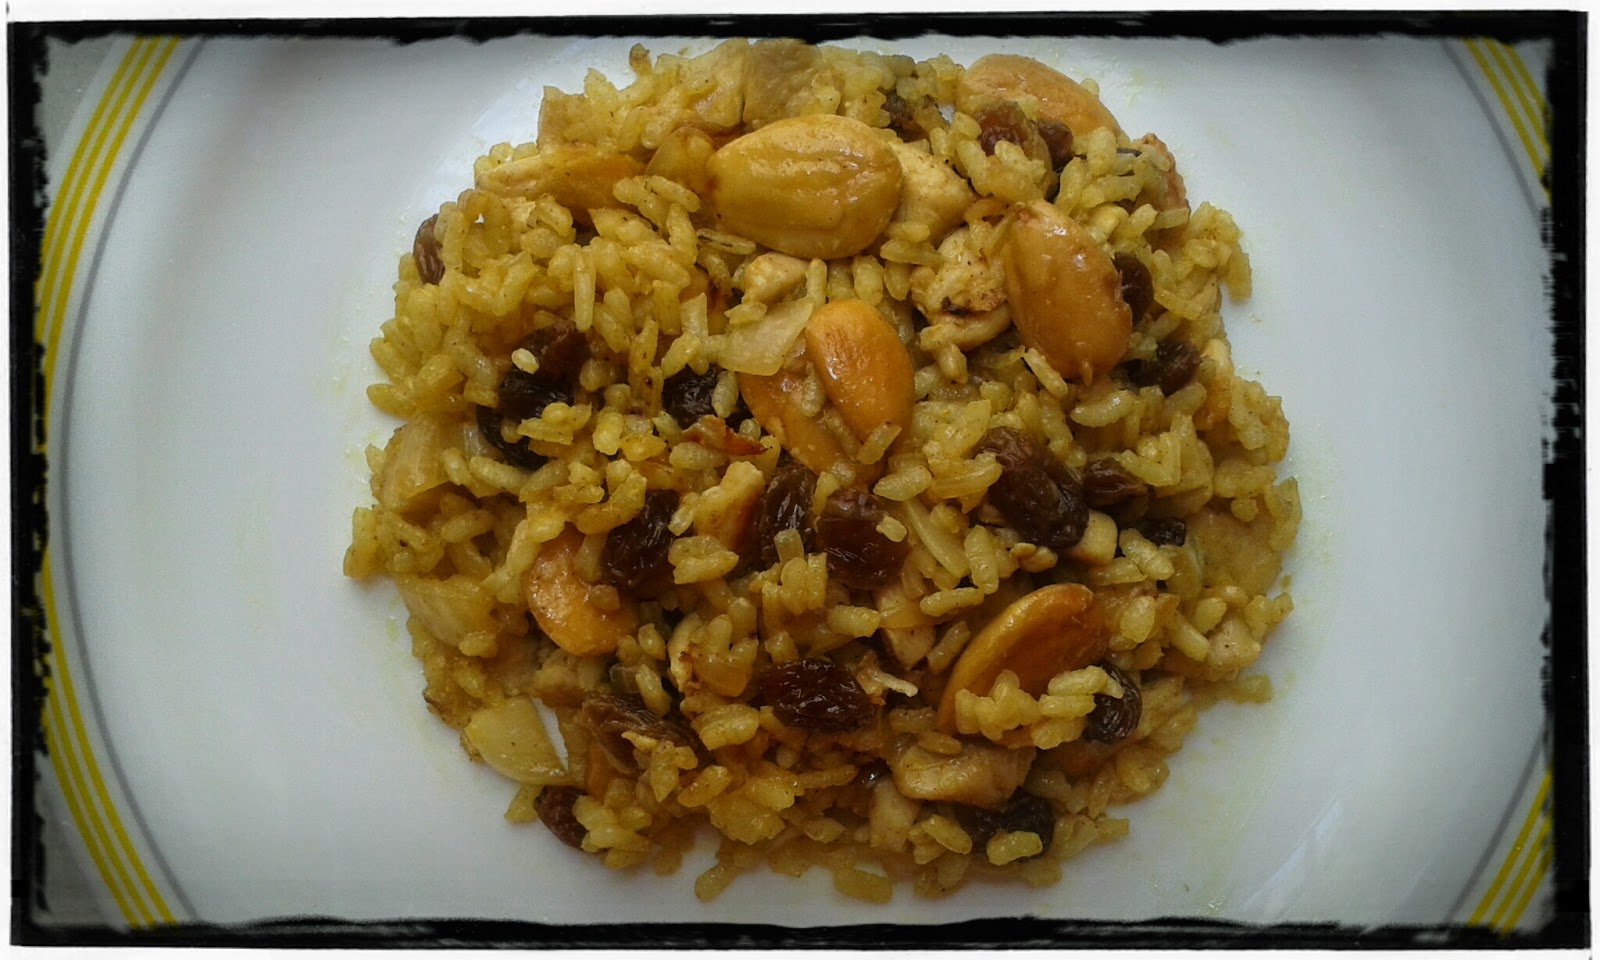 Arroz al curry con pollo, pasas y almendras.